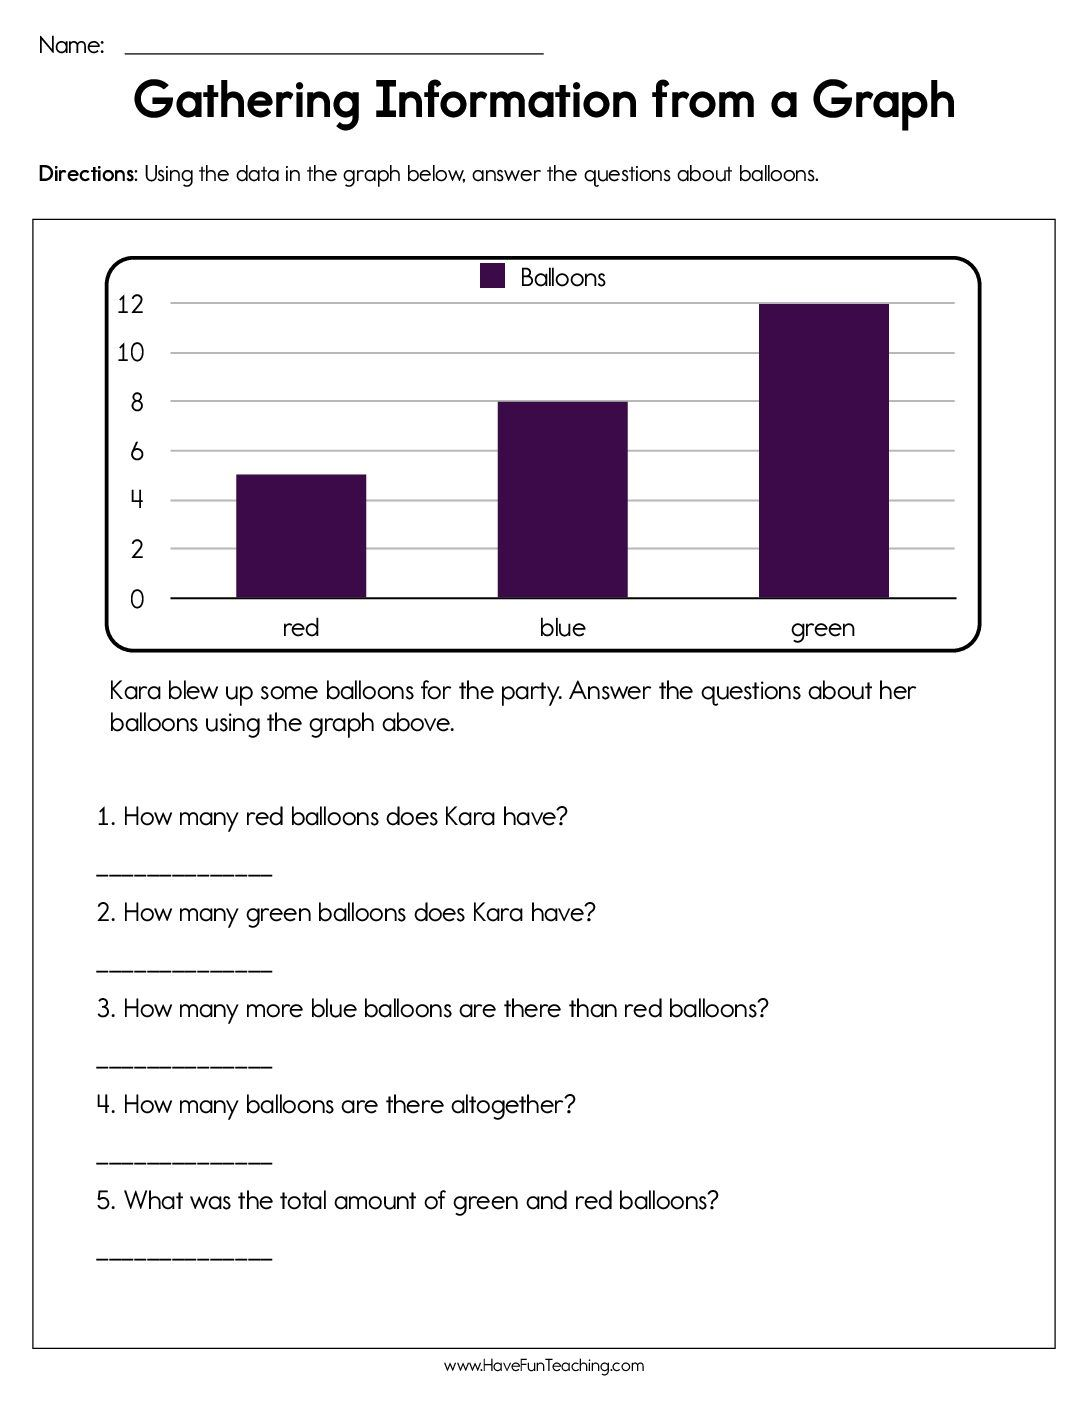 Pin By Have Fun Teaching On First Grade Graphing Worksheets Bar Graphs Graphing [ 1408 x 1088 Pixel ]